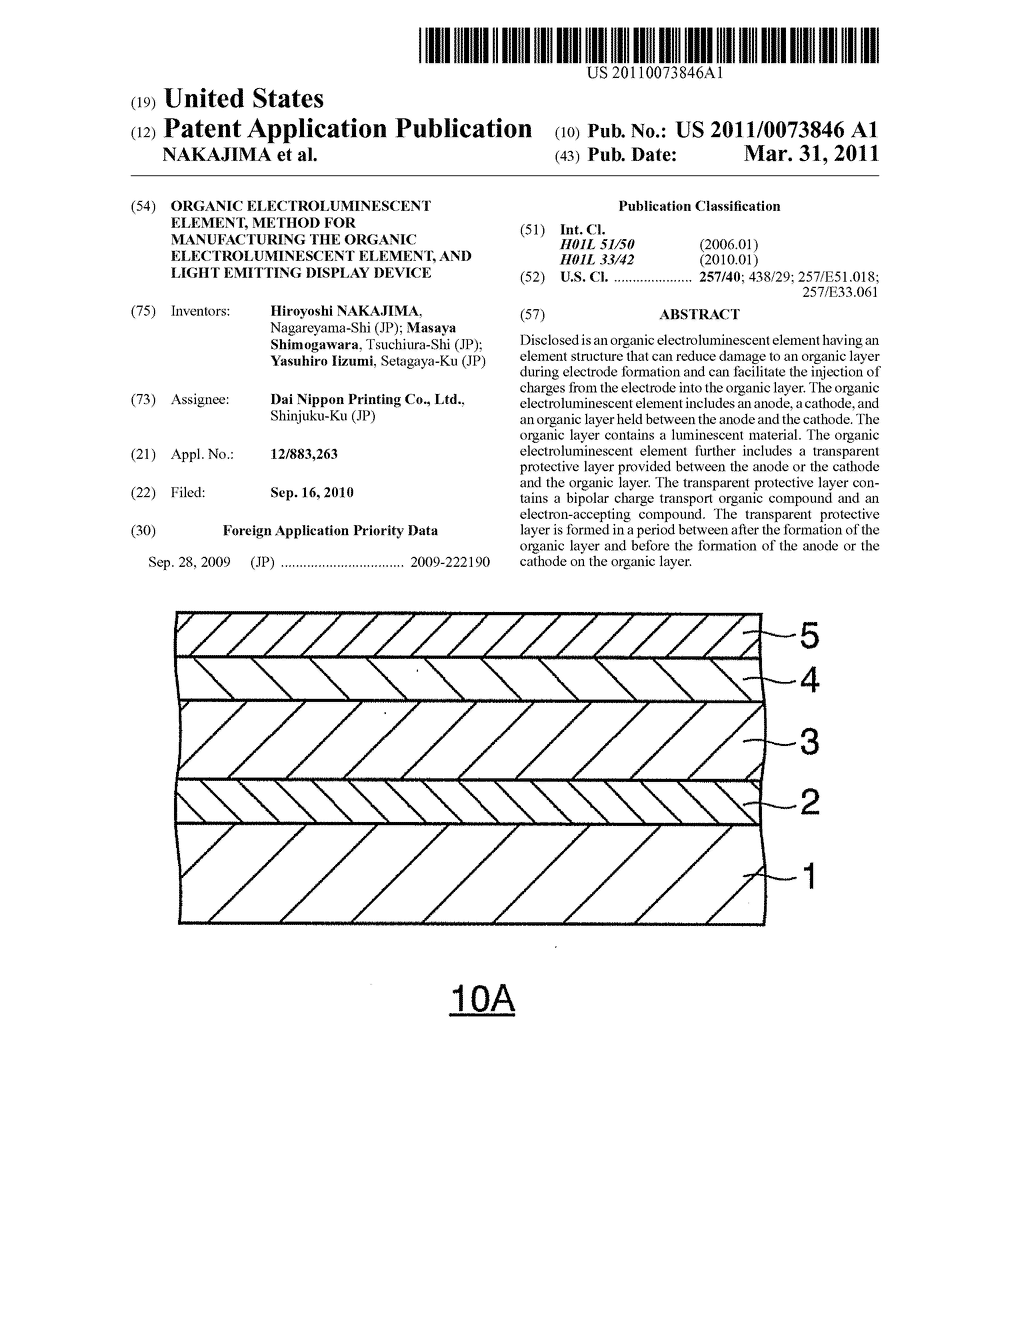 ORGANIC ELECTROLUMINESCENT ELEMENT, METHOD FOR MANUFACTURING THE ORGANIC ELECTROLUMINESCENT ELEMENT, AND LIGHT EMITTING DISPLAY DEVICE - diagram, schematic, and image 01